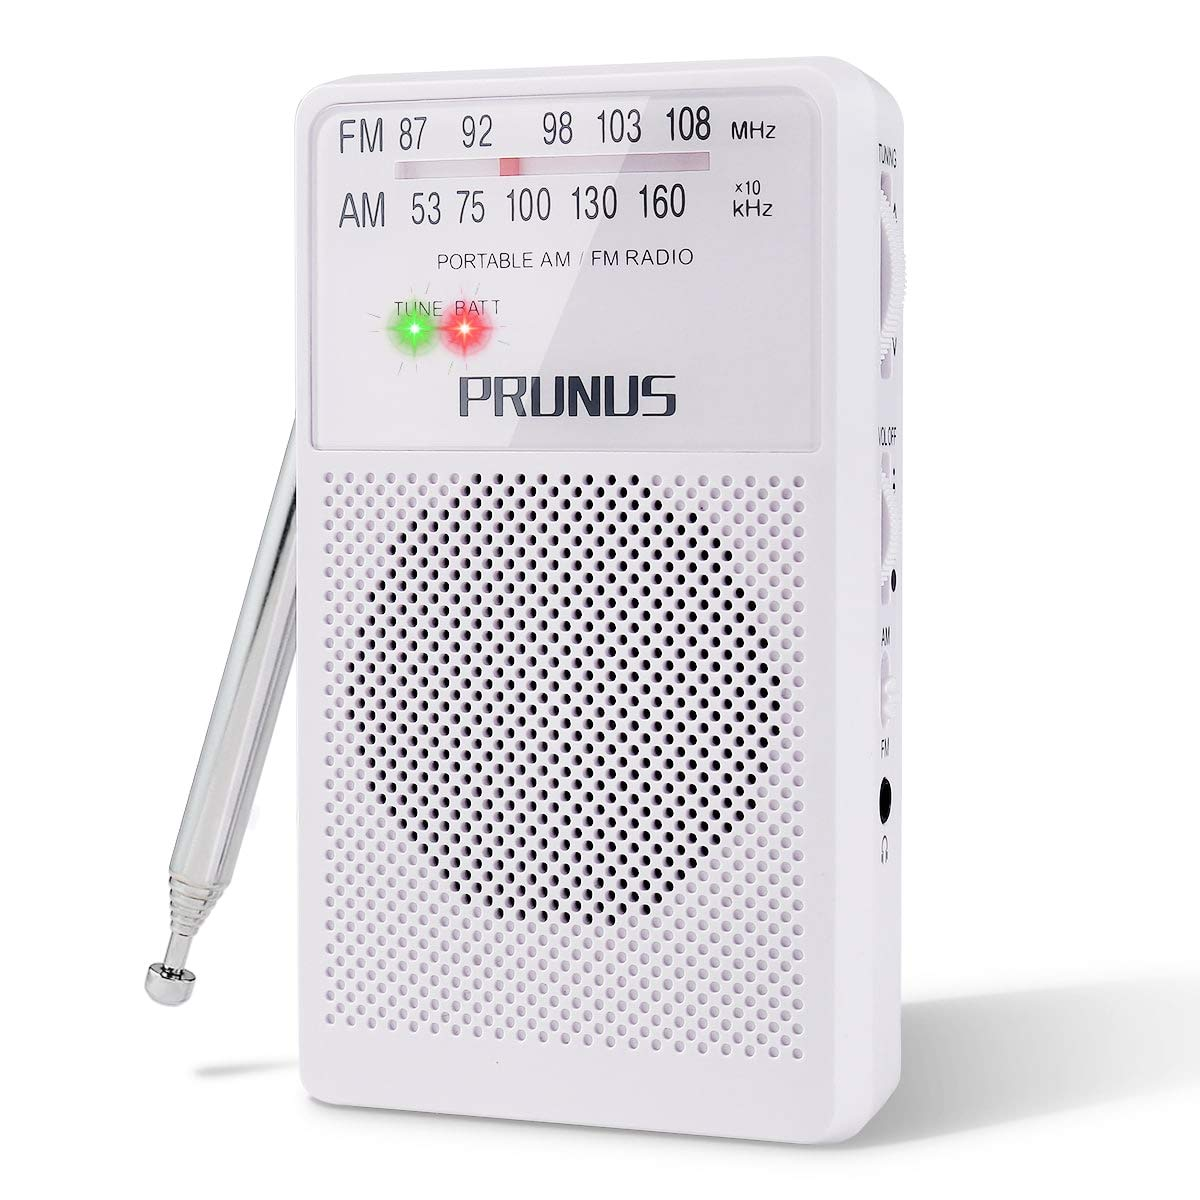 ANJAN-A166 AM/FM Portable Radio, Small Transistor Radio with Ultra-Long Copper Antenna, Excellent Reception, Tuning Knob with Signal Indicator, Supports Replaceable Battery (AA) (White), by PRUNUS